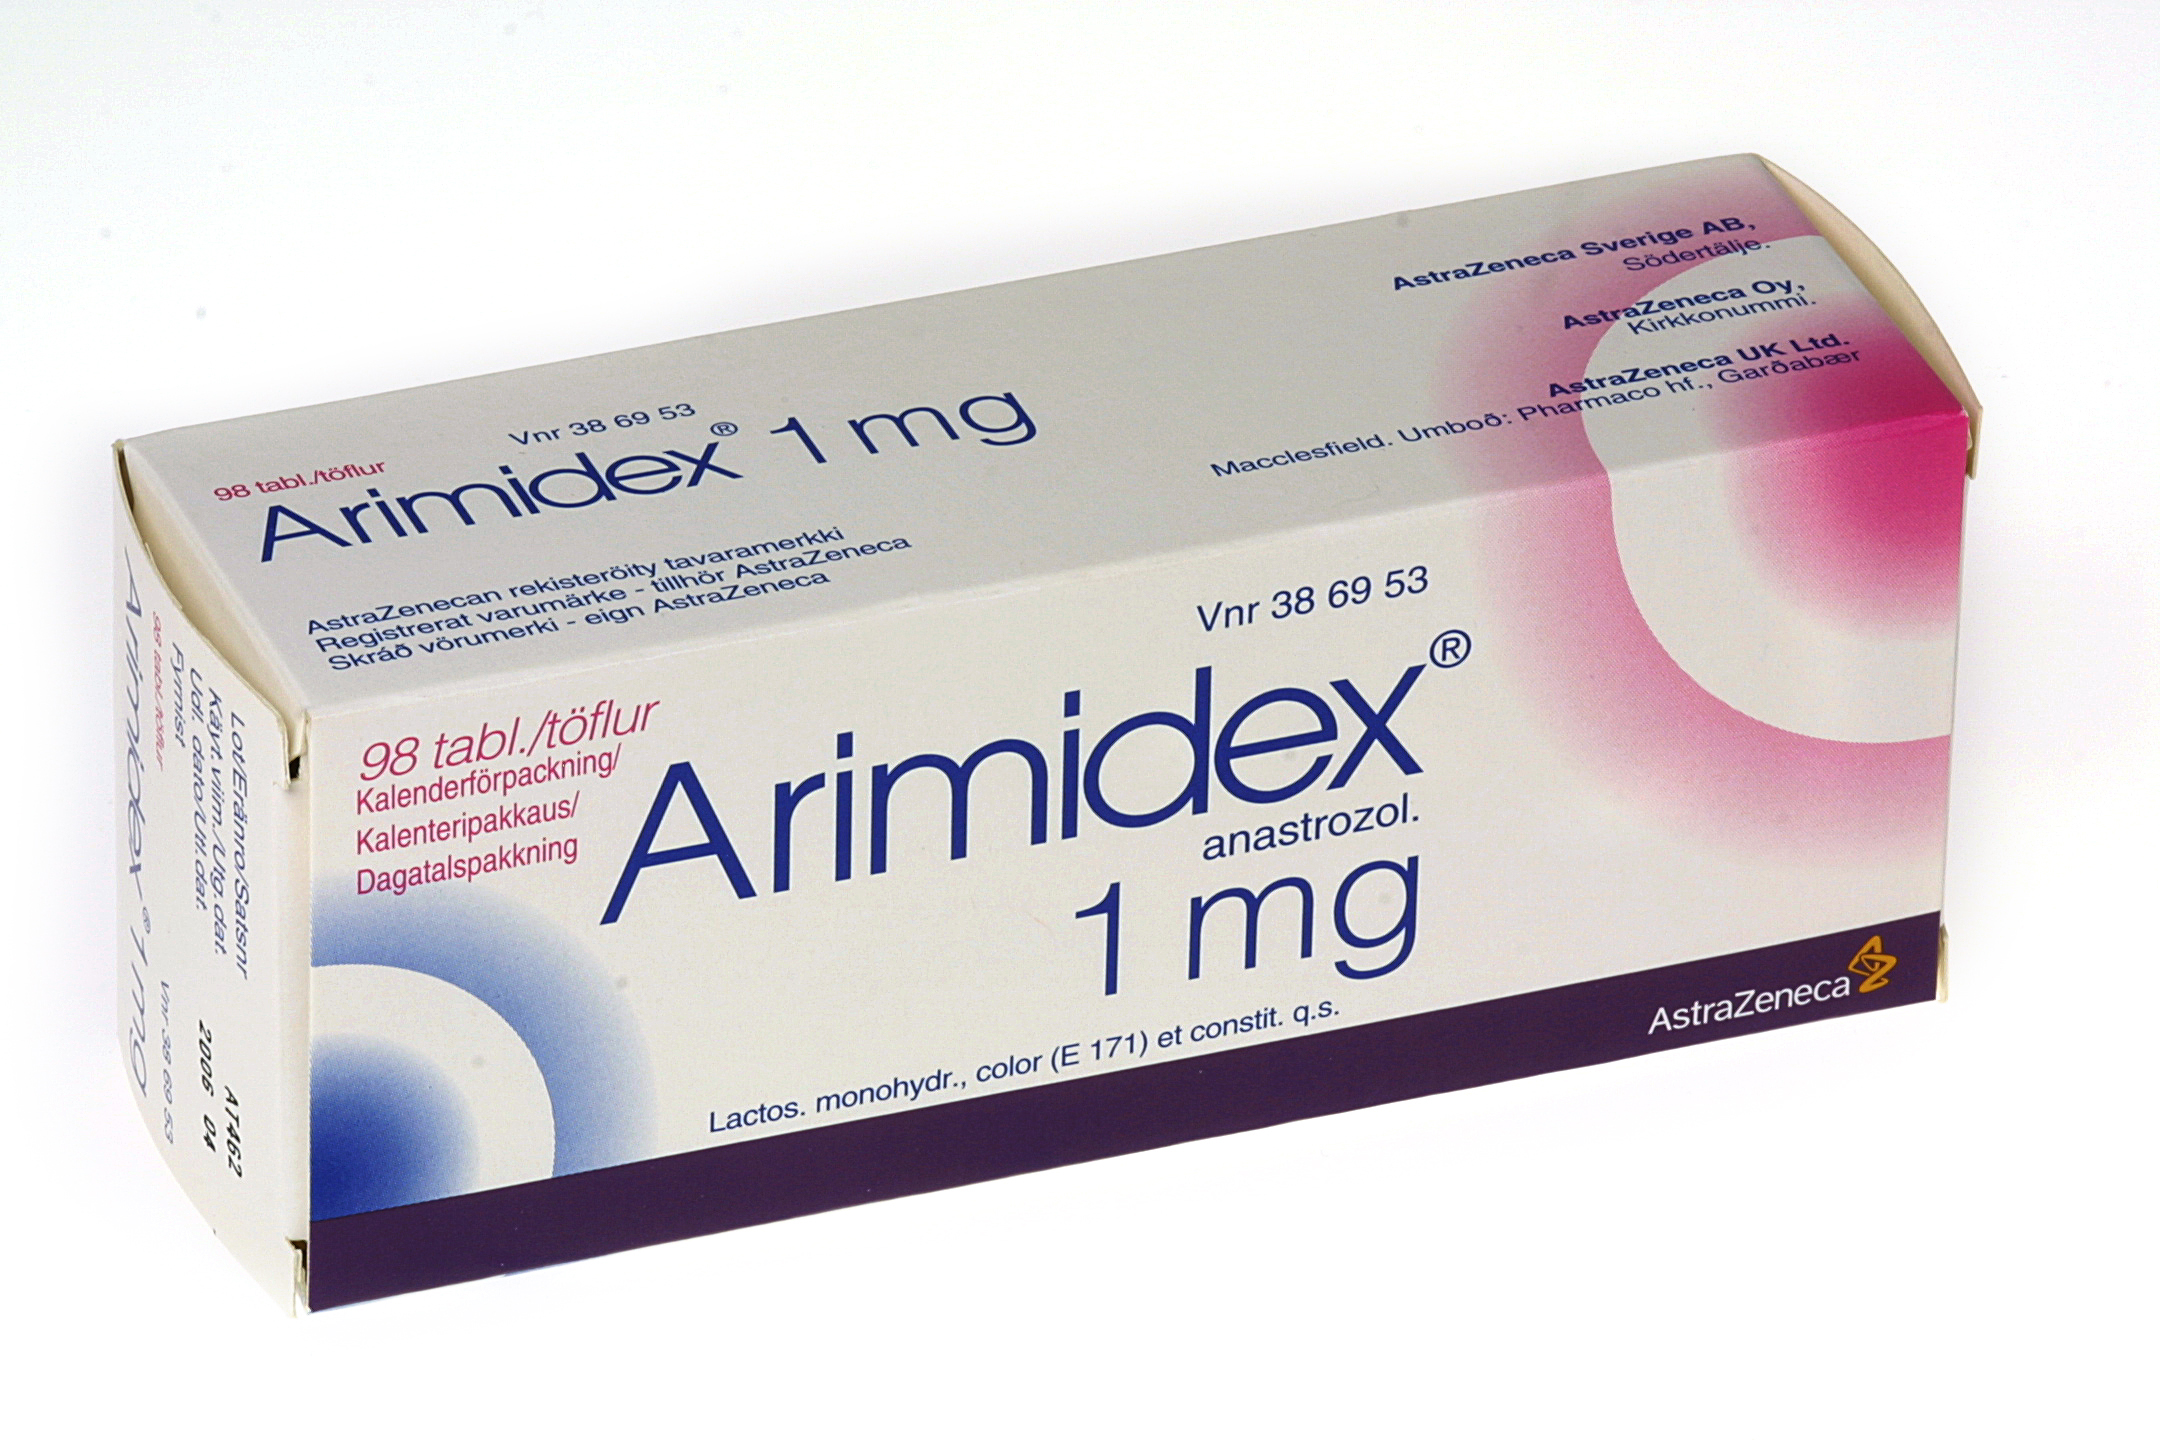 arimidex per day